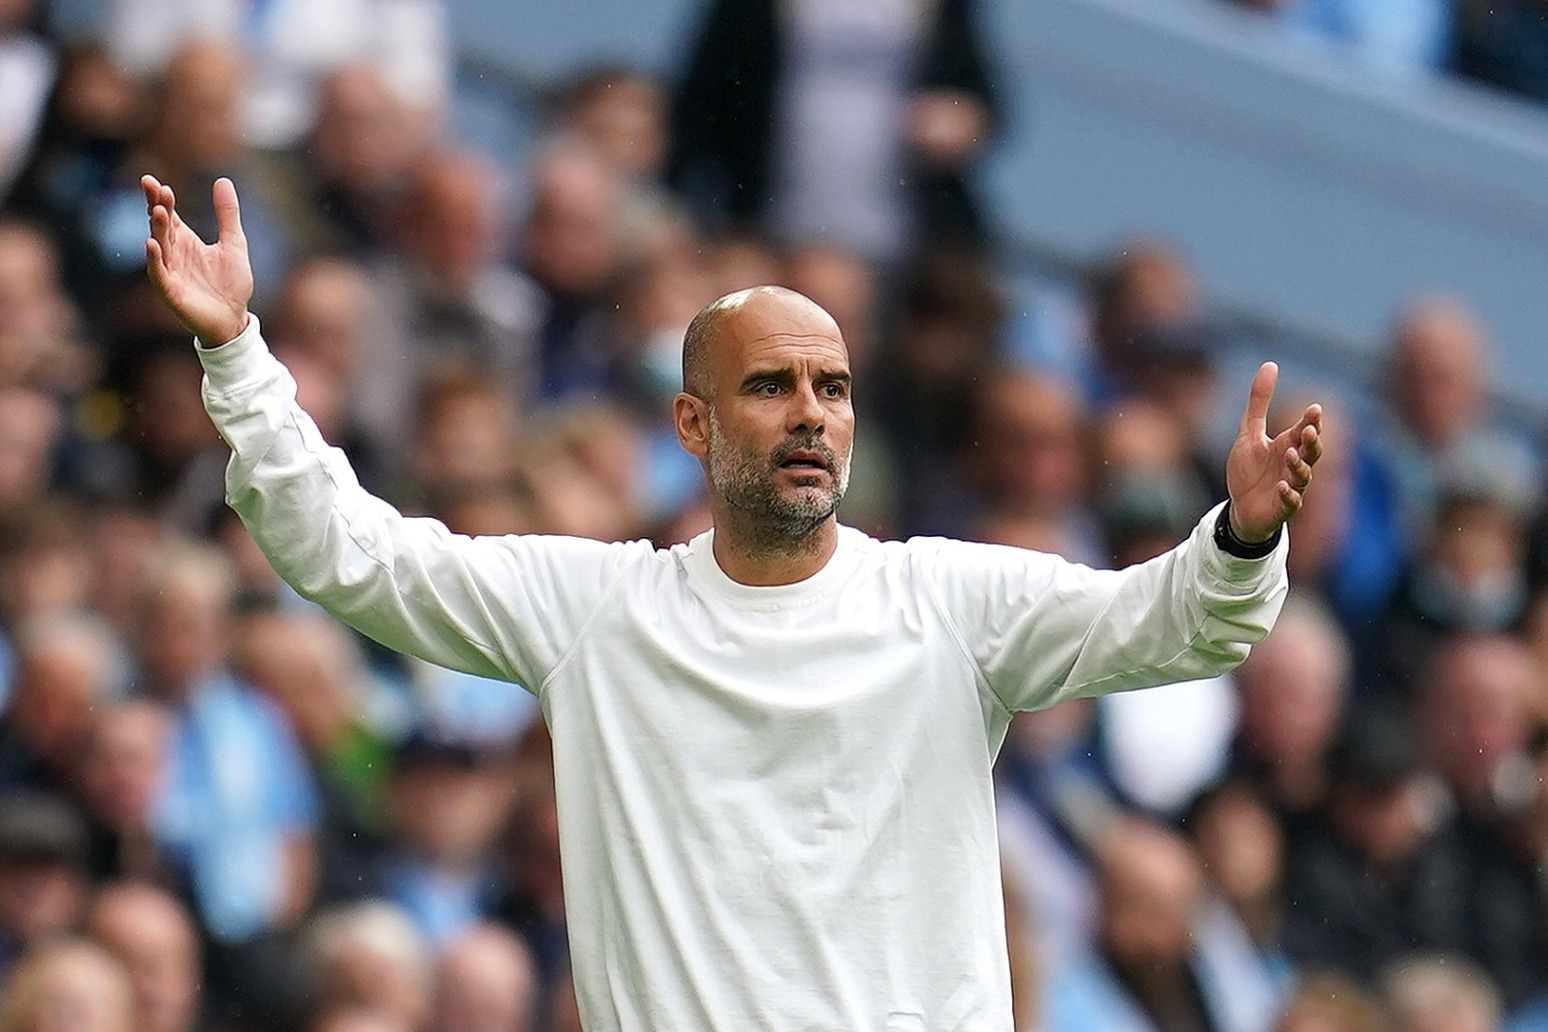 Pep Guardiola plans to leave Man City when his contract expires in 2023